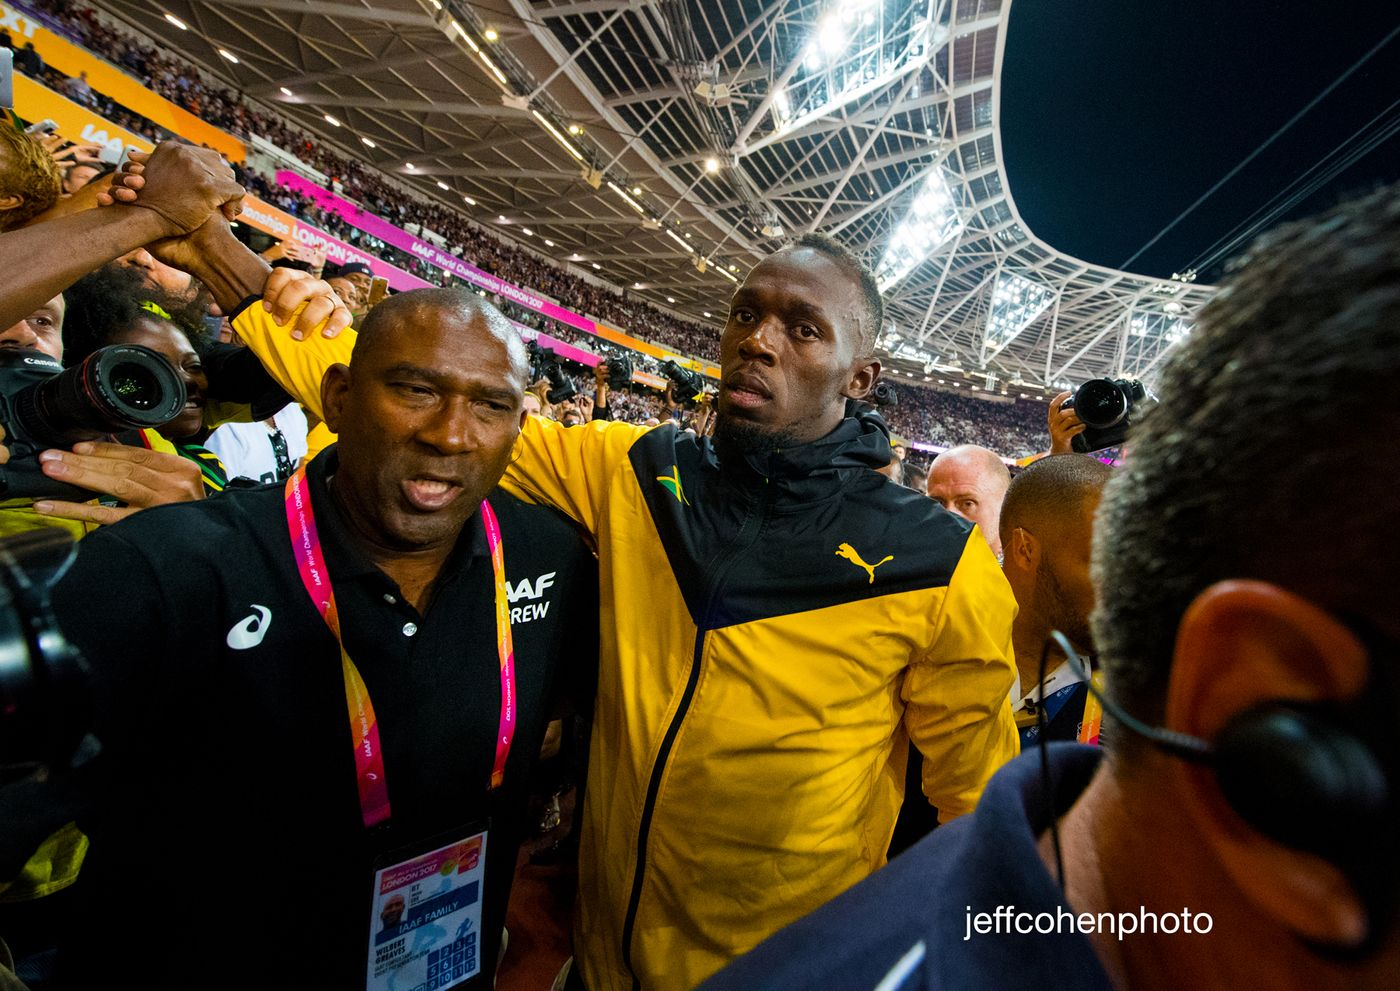 2017-IAAF-WC-London-night10-bolt-lap--2976--jeff-cohen-photo--web.jpg